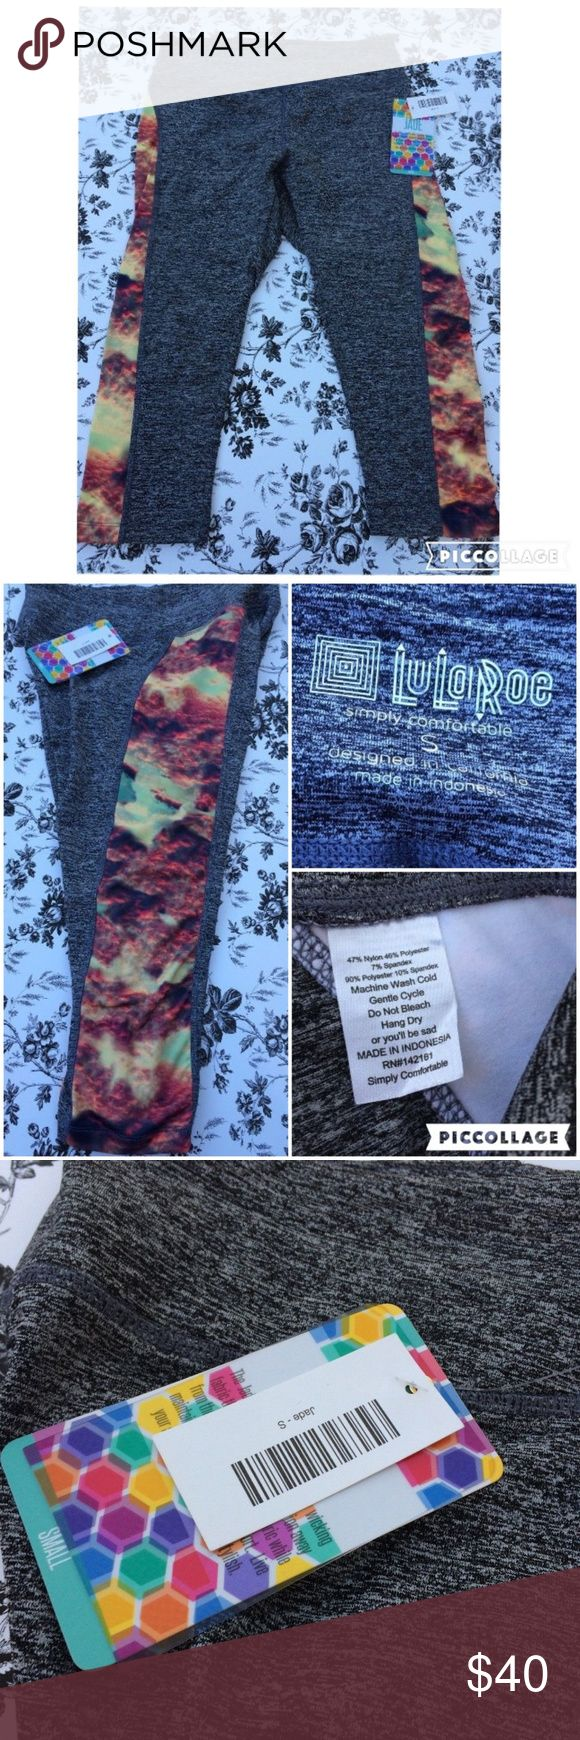 Lularoe Jade Workout Leggings Gray This is a beautiful pair of Lularoe Jade workout leggings.  Gray with multi colored side panel. Beautiful print resembling clouds and mountains.  Size Small  New with tags!   UID3447 LuLaRoe Pants Leggings